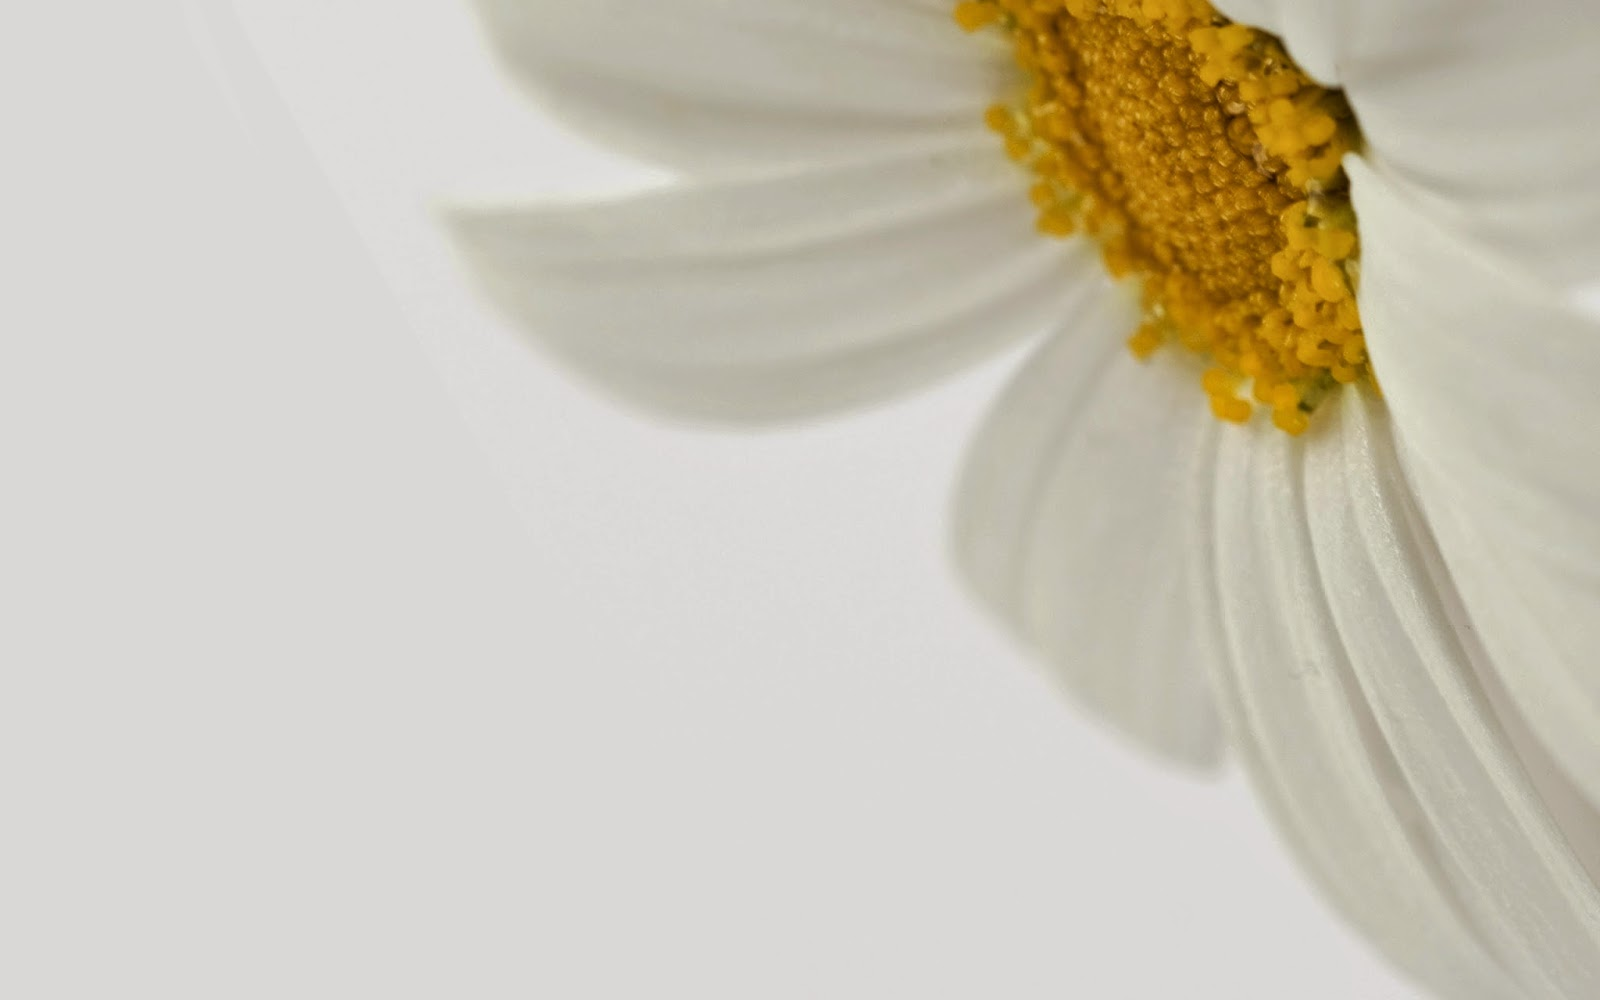 Daisy Flower Wallpaper White BG For Desktop PC